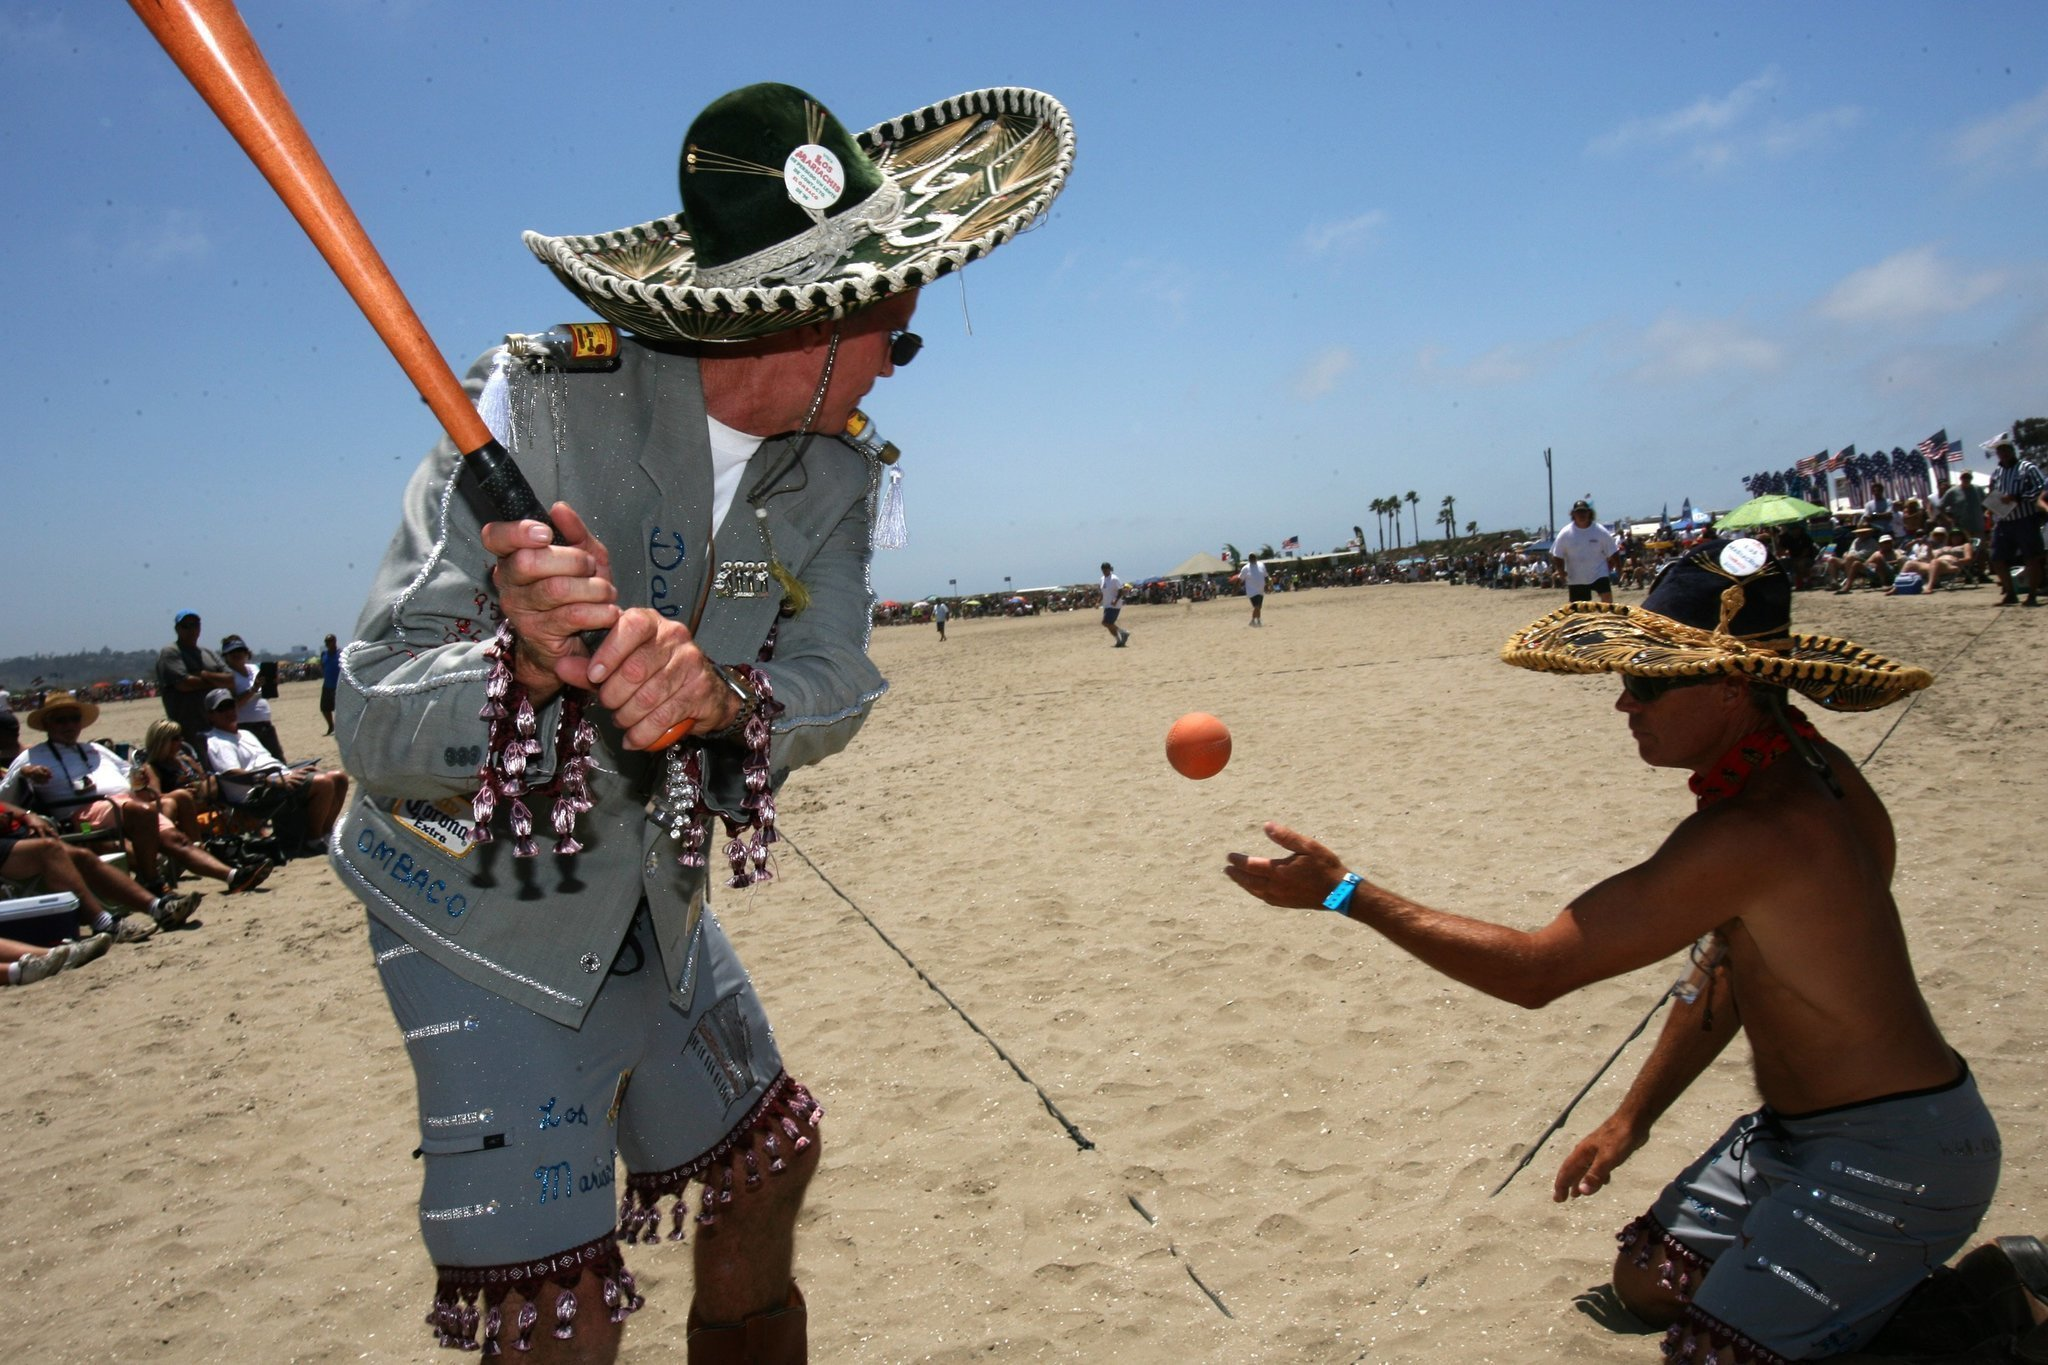 What S The Party Beach In San Diego